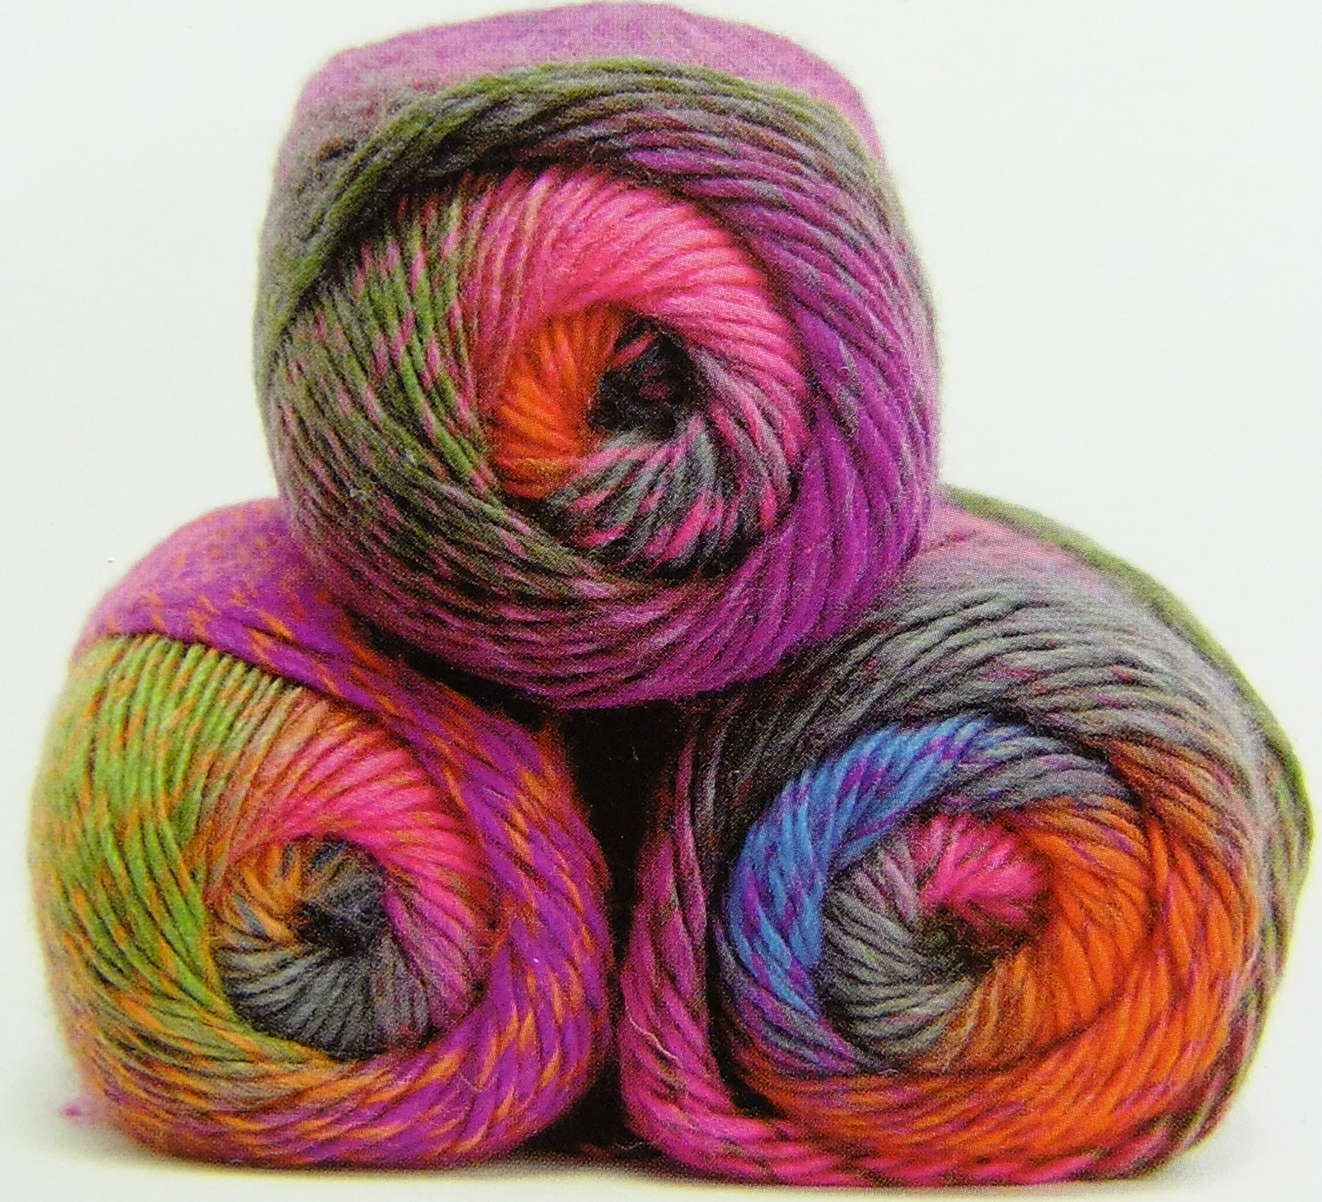 Acrylic Yarn : ... -Vibrant-Shades-Knitting-Yarn-James-Brett-Acrylic-Wool-Mix-100g-Ball